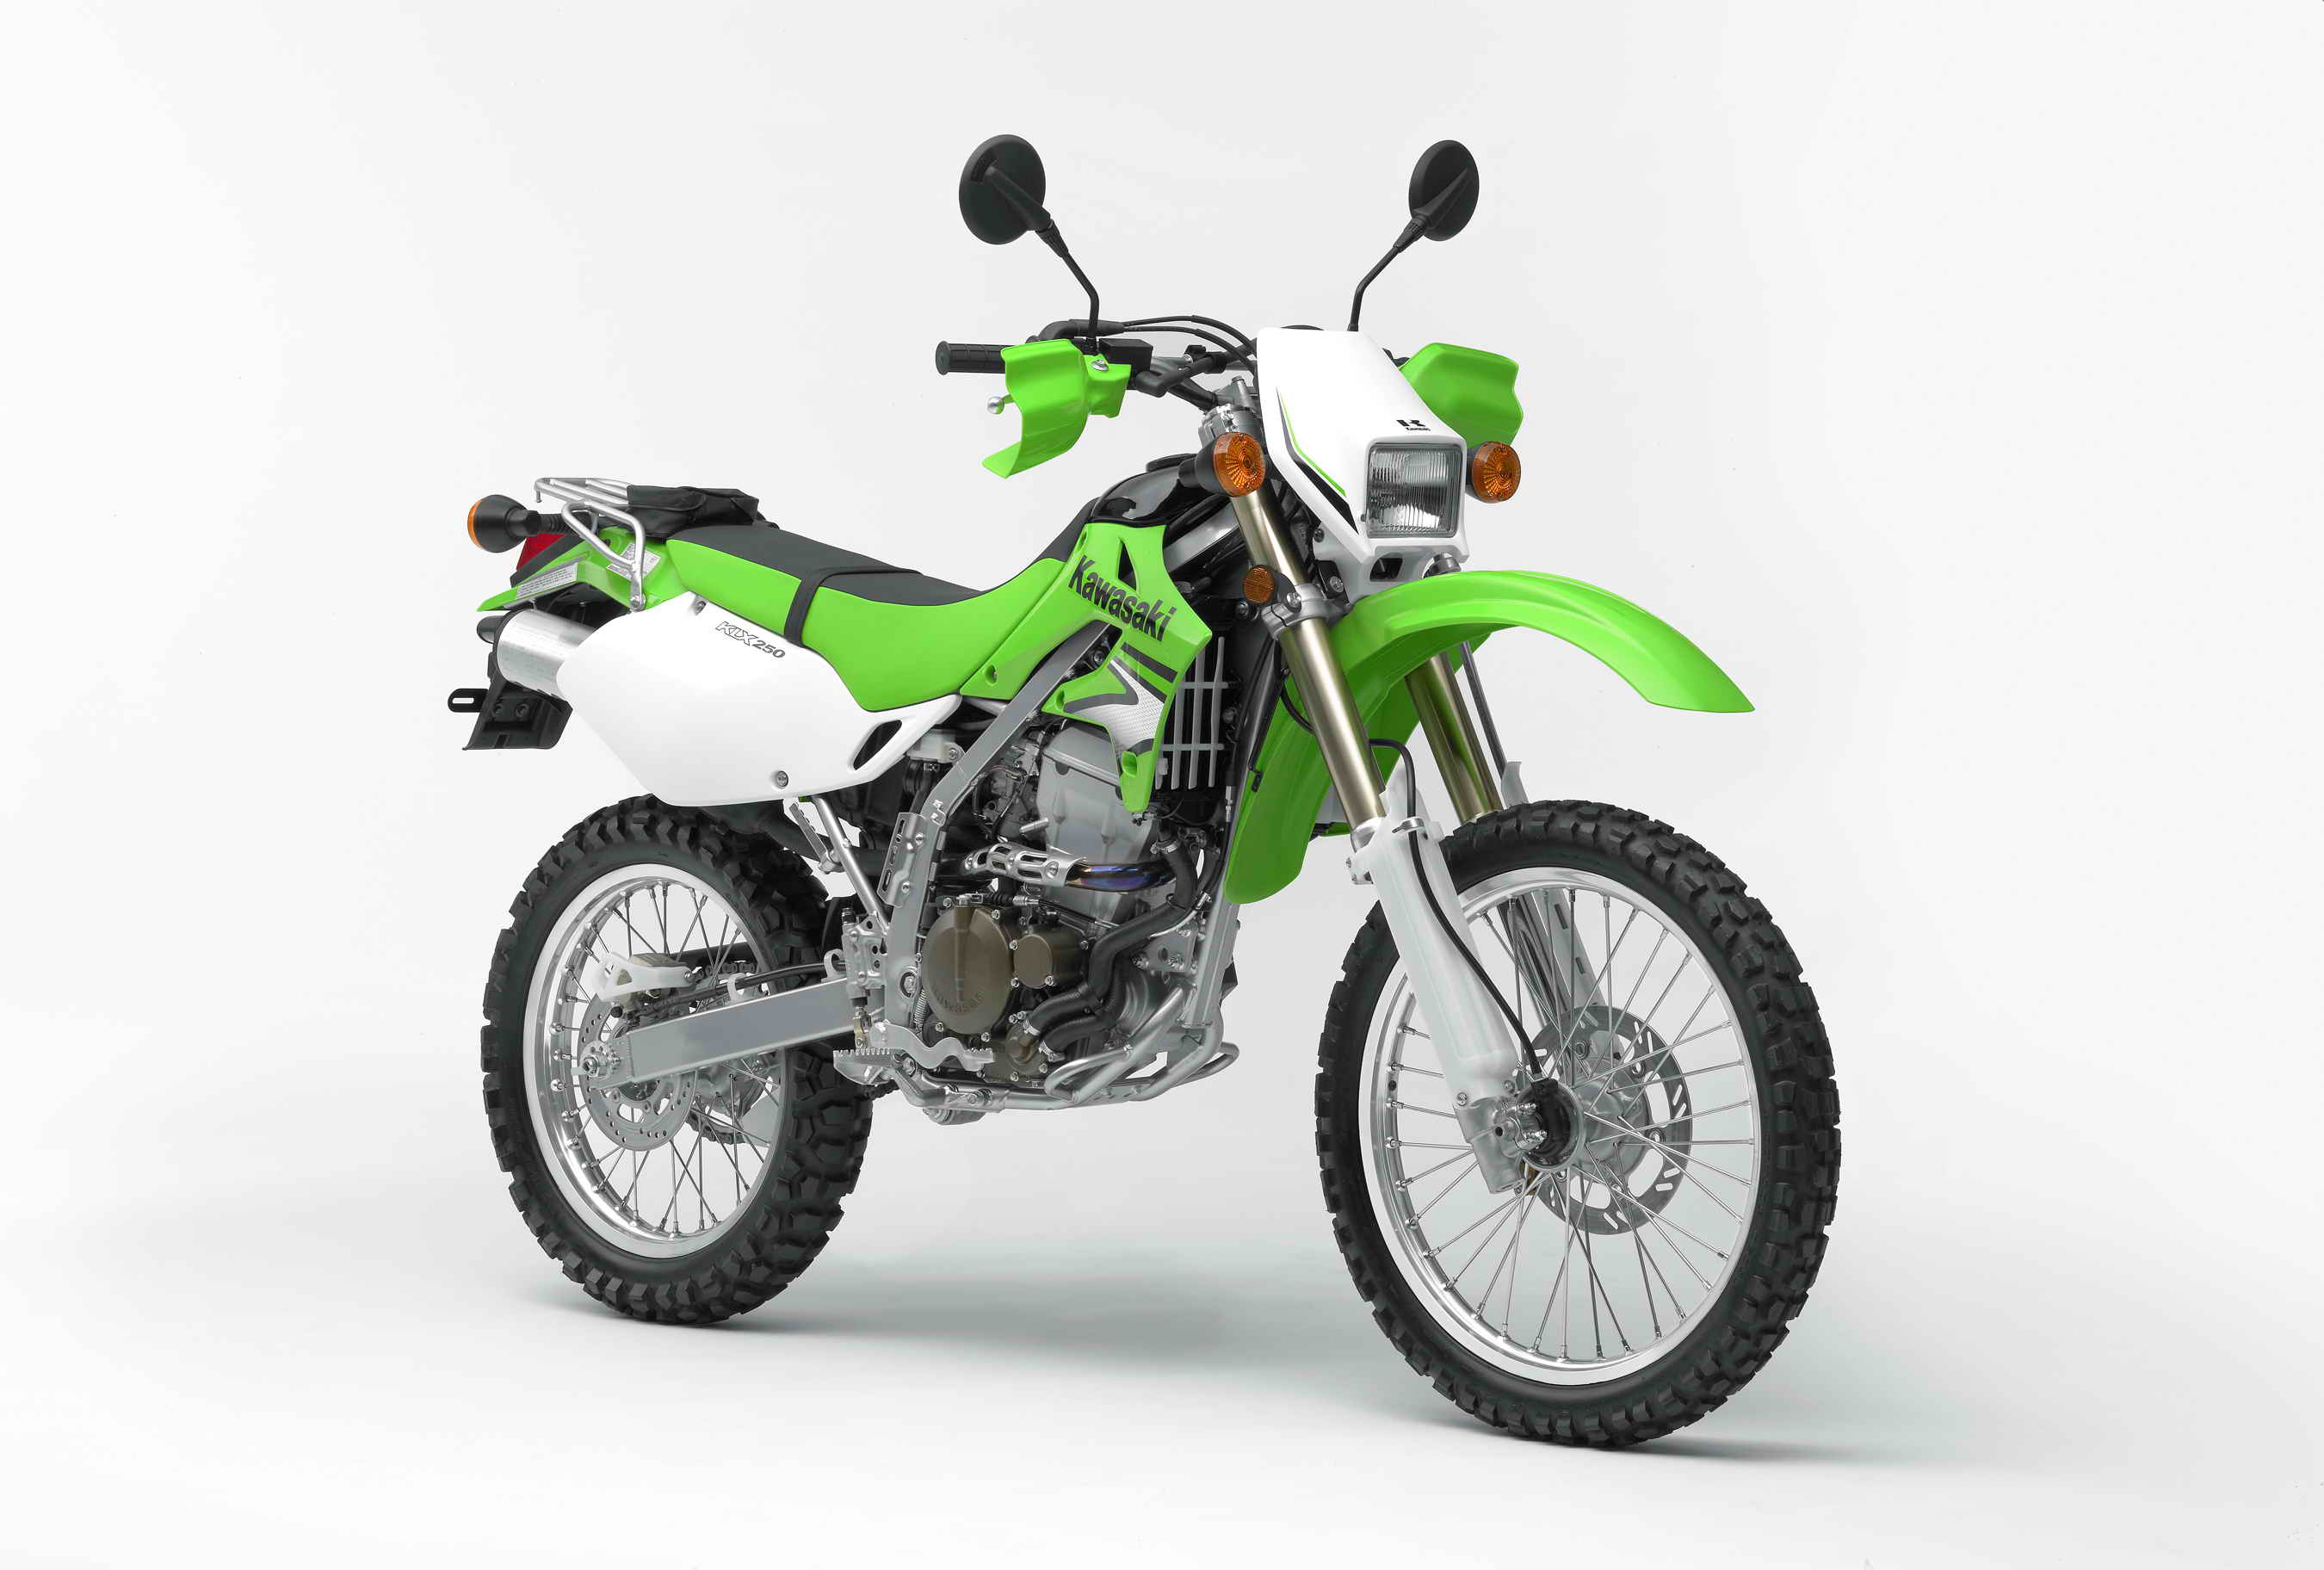 Kawasaki KLX250S | Top Speed